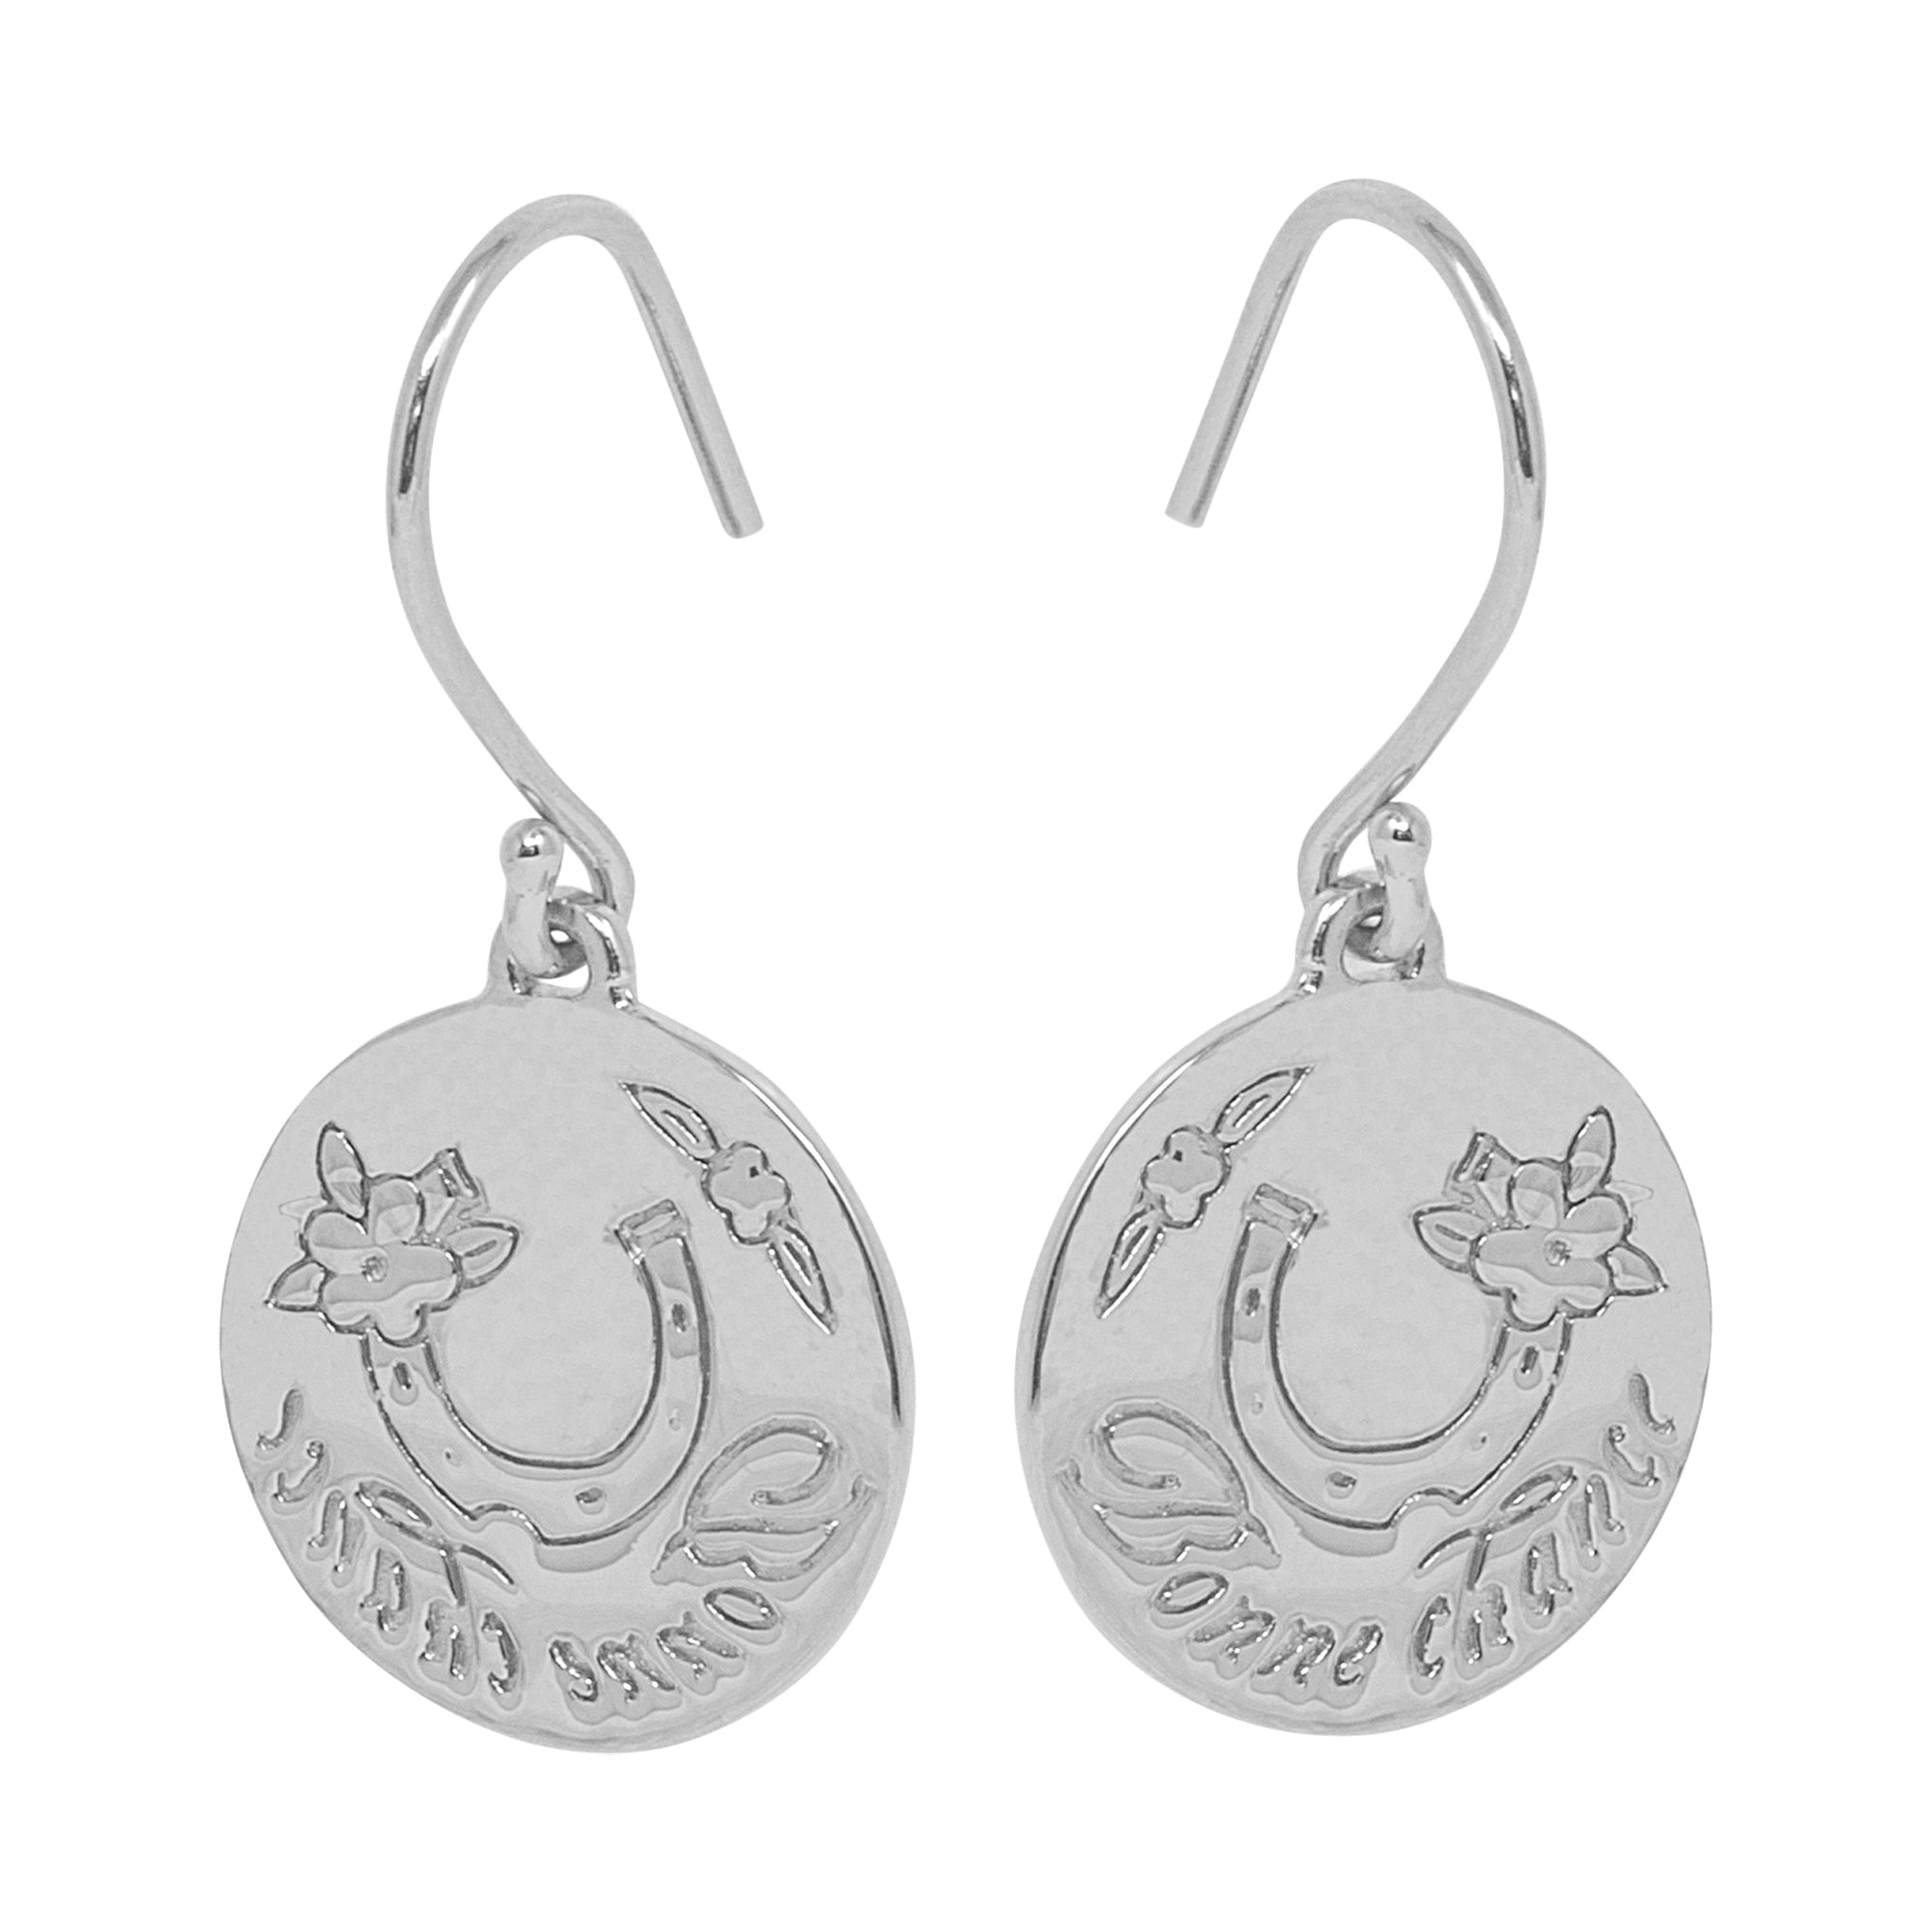 Silver Bonne Chance Earrings by Pearl & Queenie